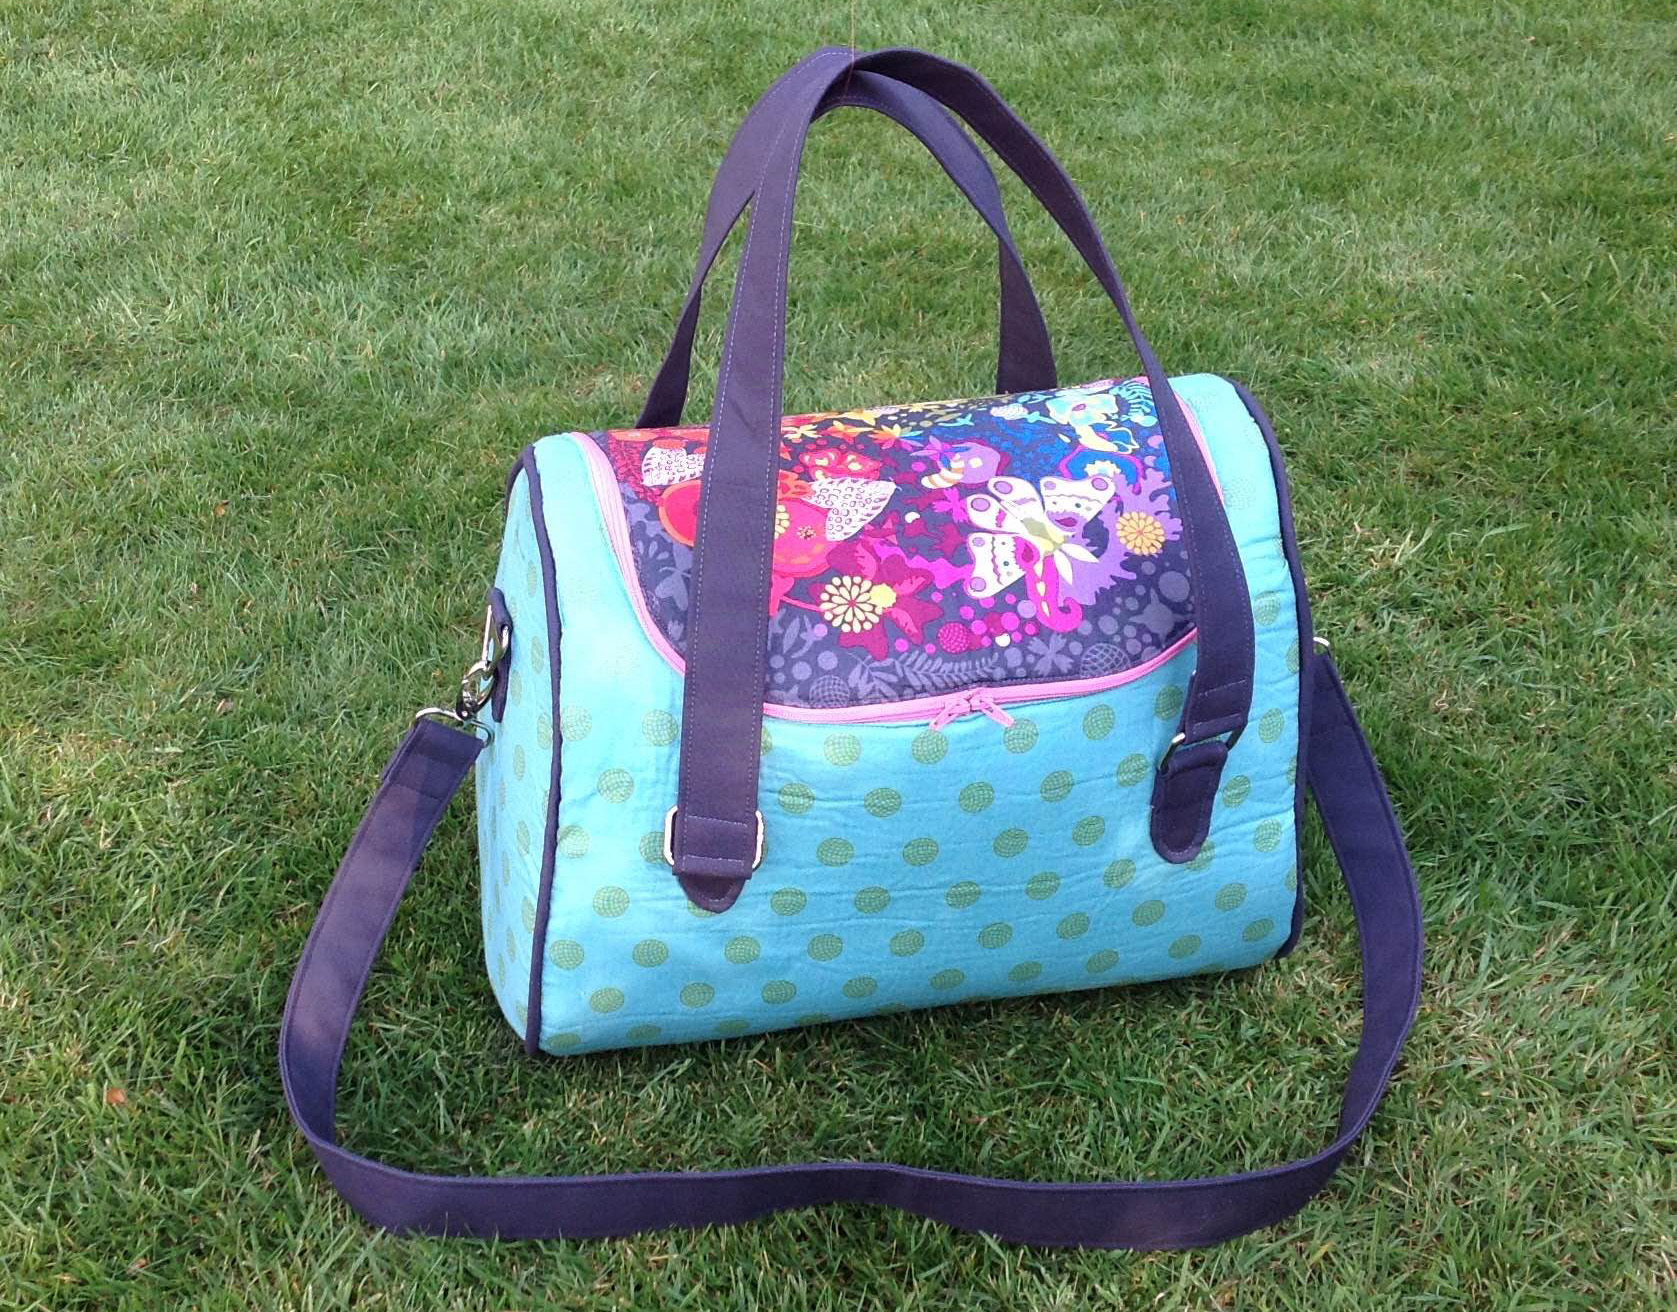 Sew Sweetness Tortoise Bag sewing pattern, sewn by Lisa